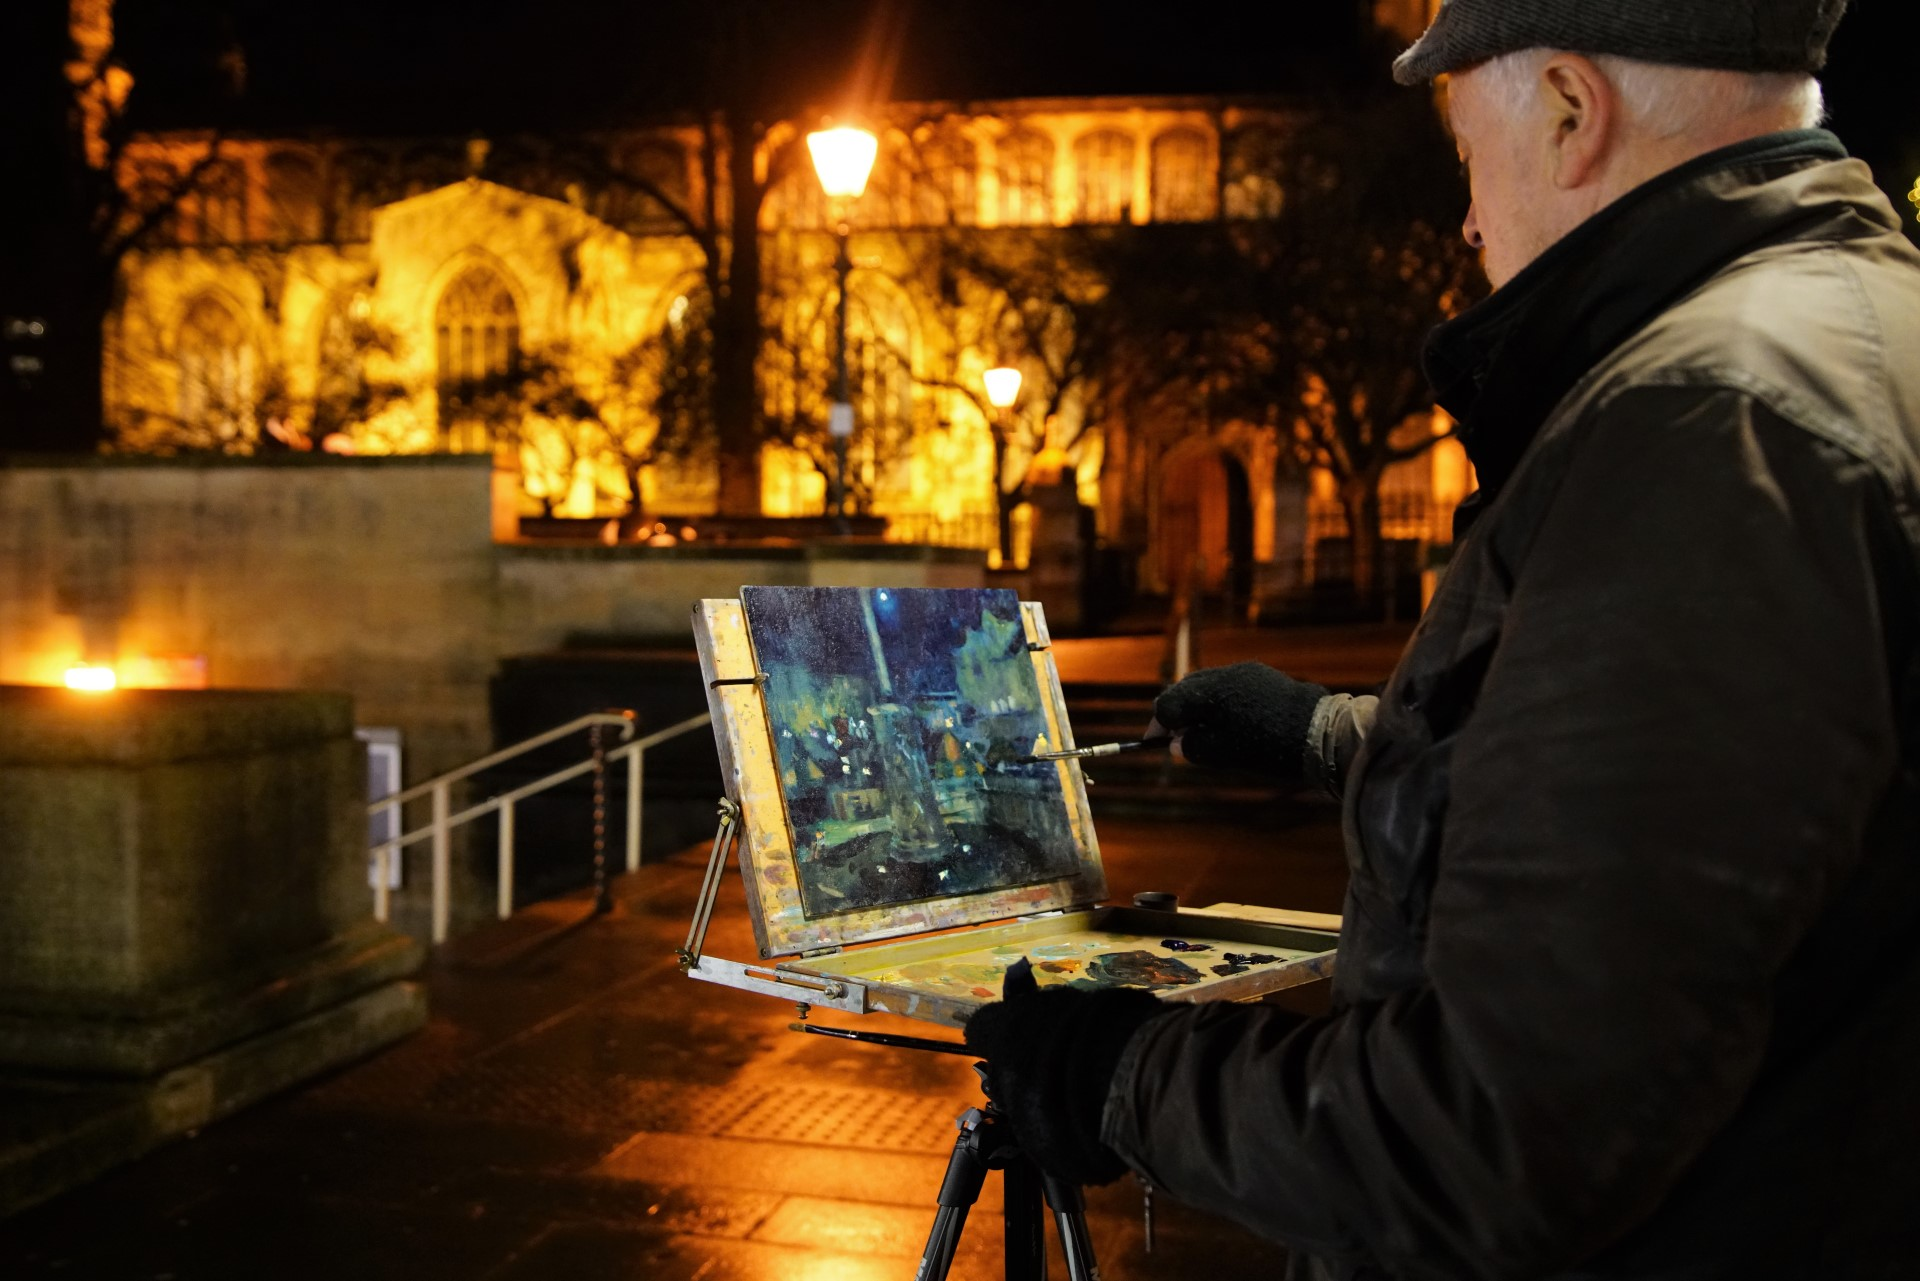 Artist Richard Bond painting from the Market at Paint Out Norwich Winter Nocturne